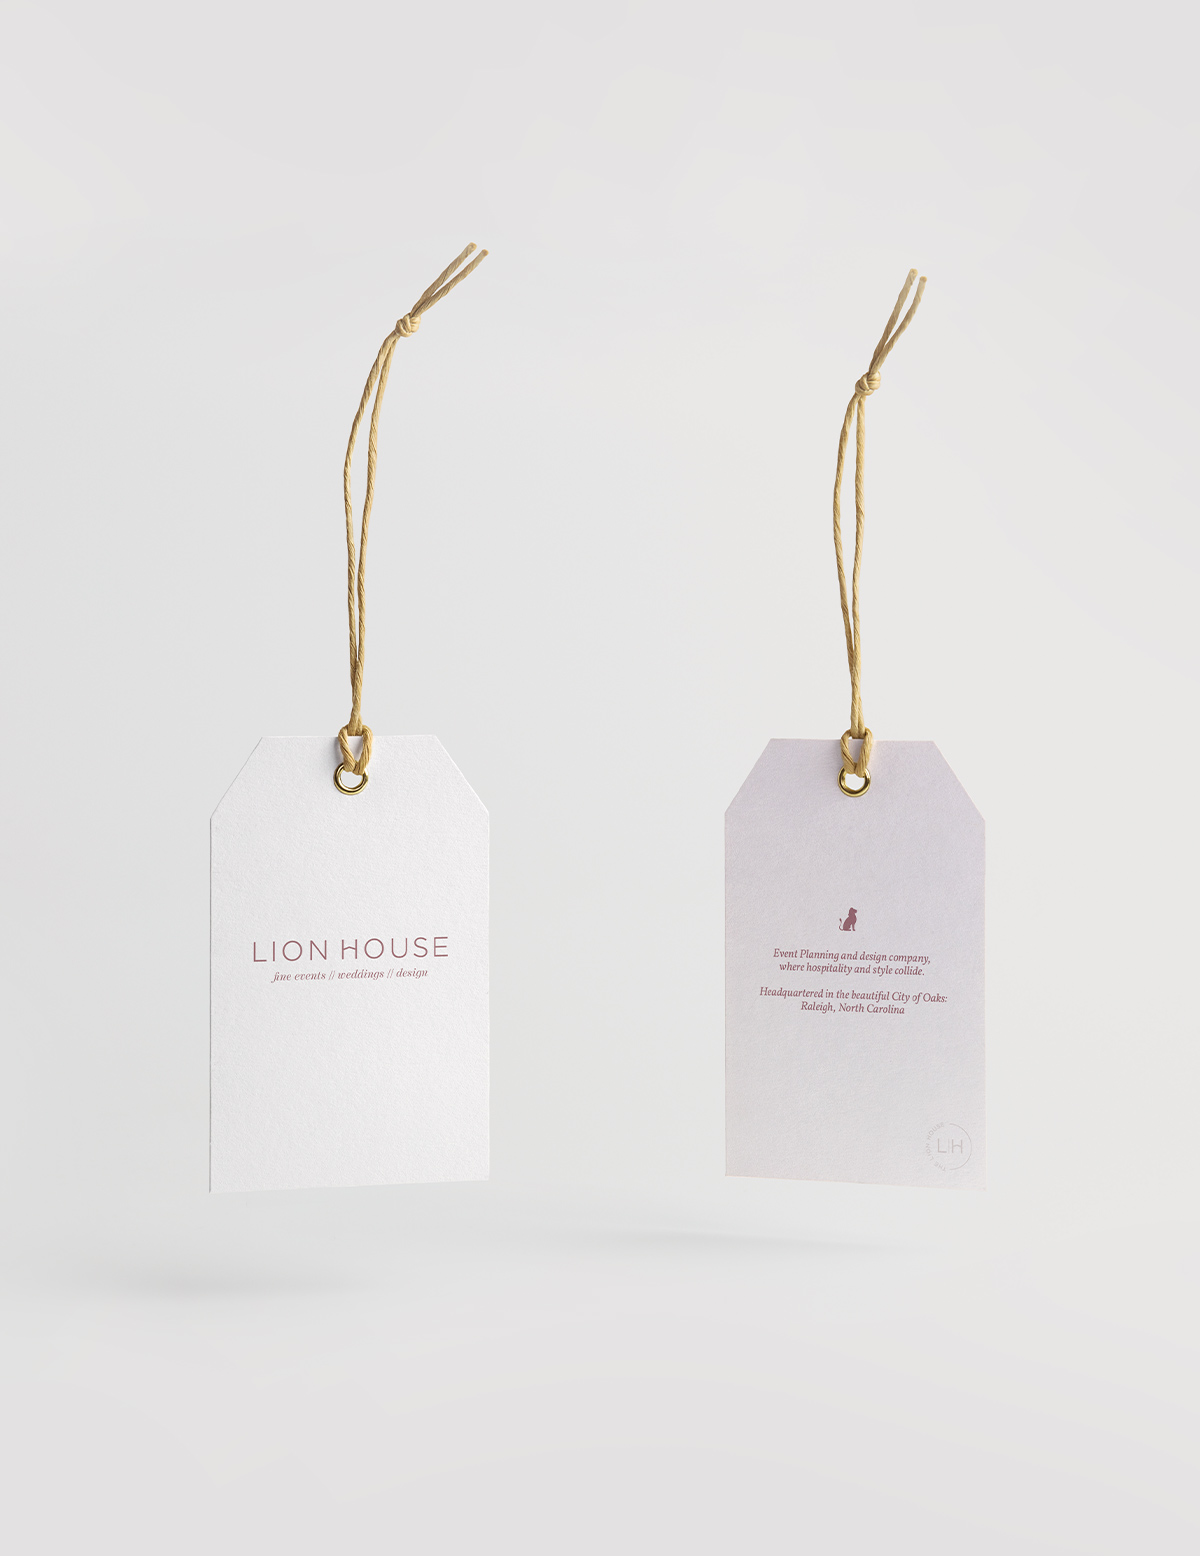 Lion House Branding and Web Design